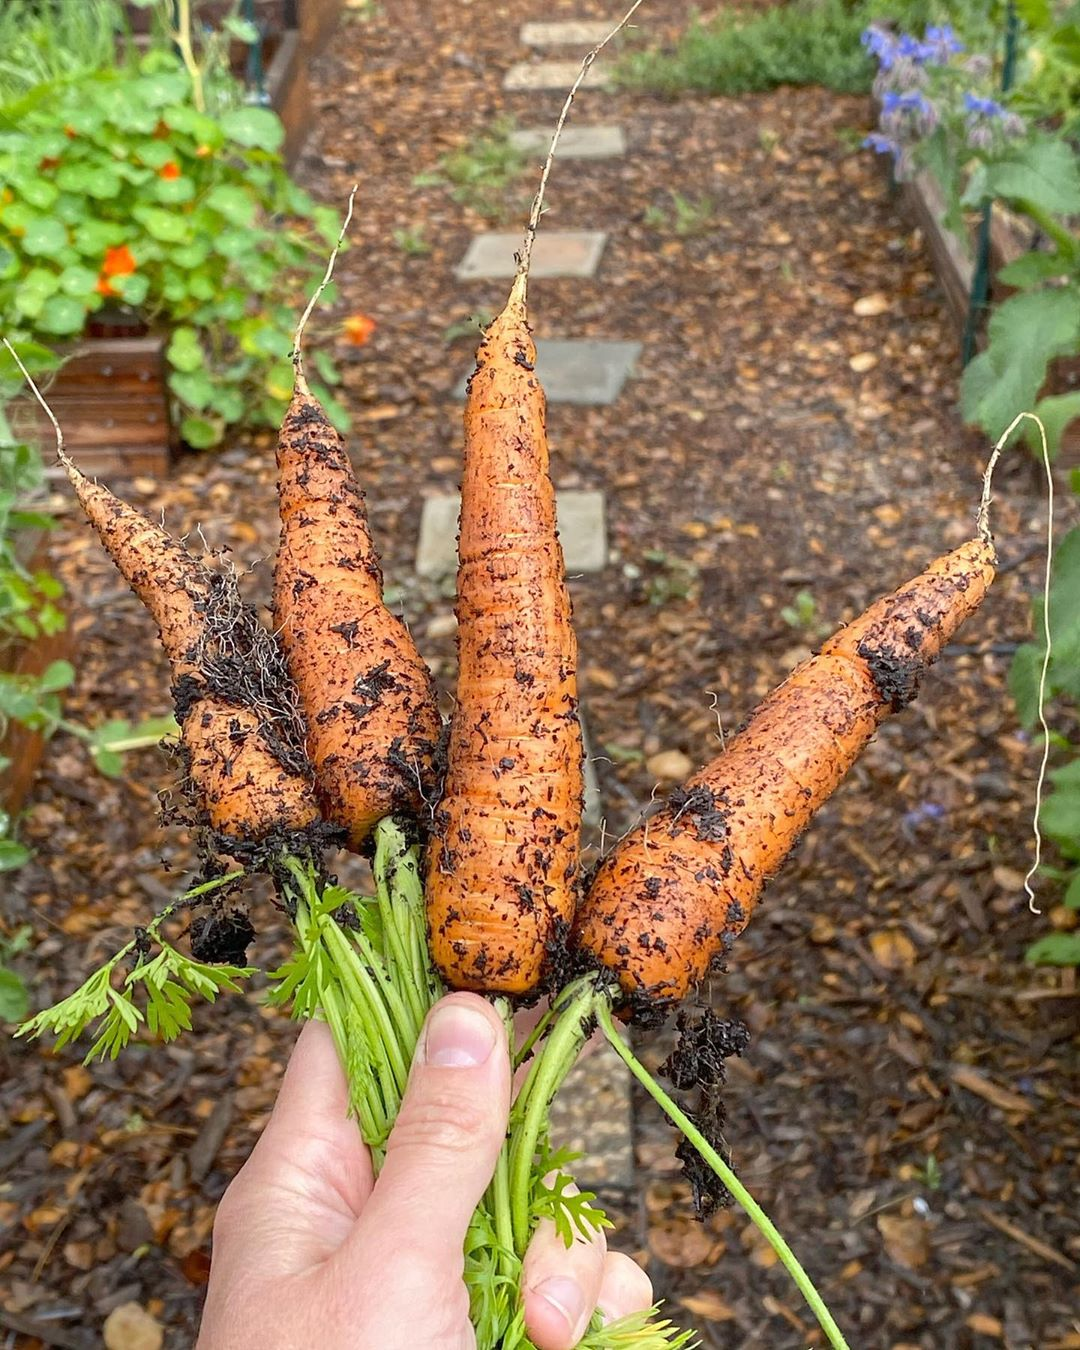 Carrots: Patience Seems To Be A Virtue W Carrots - Gardening